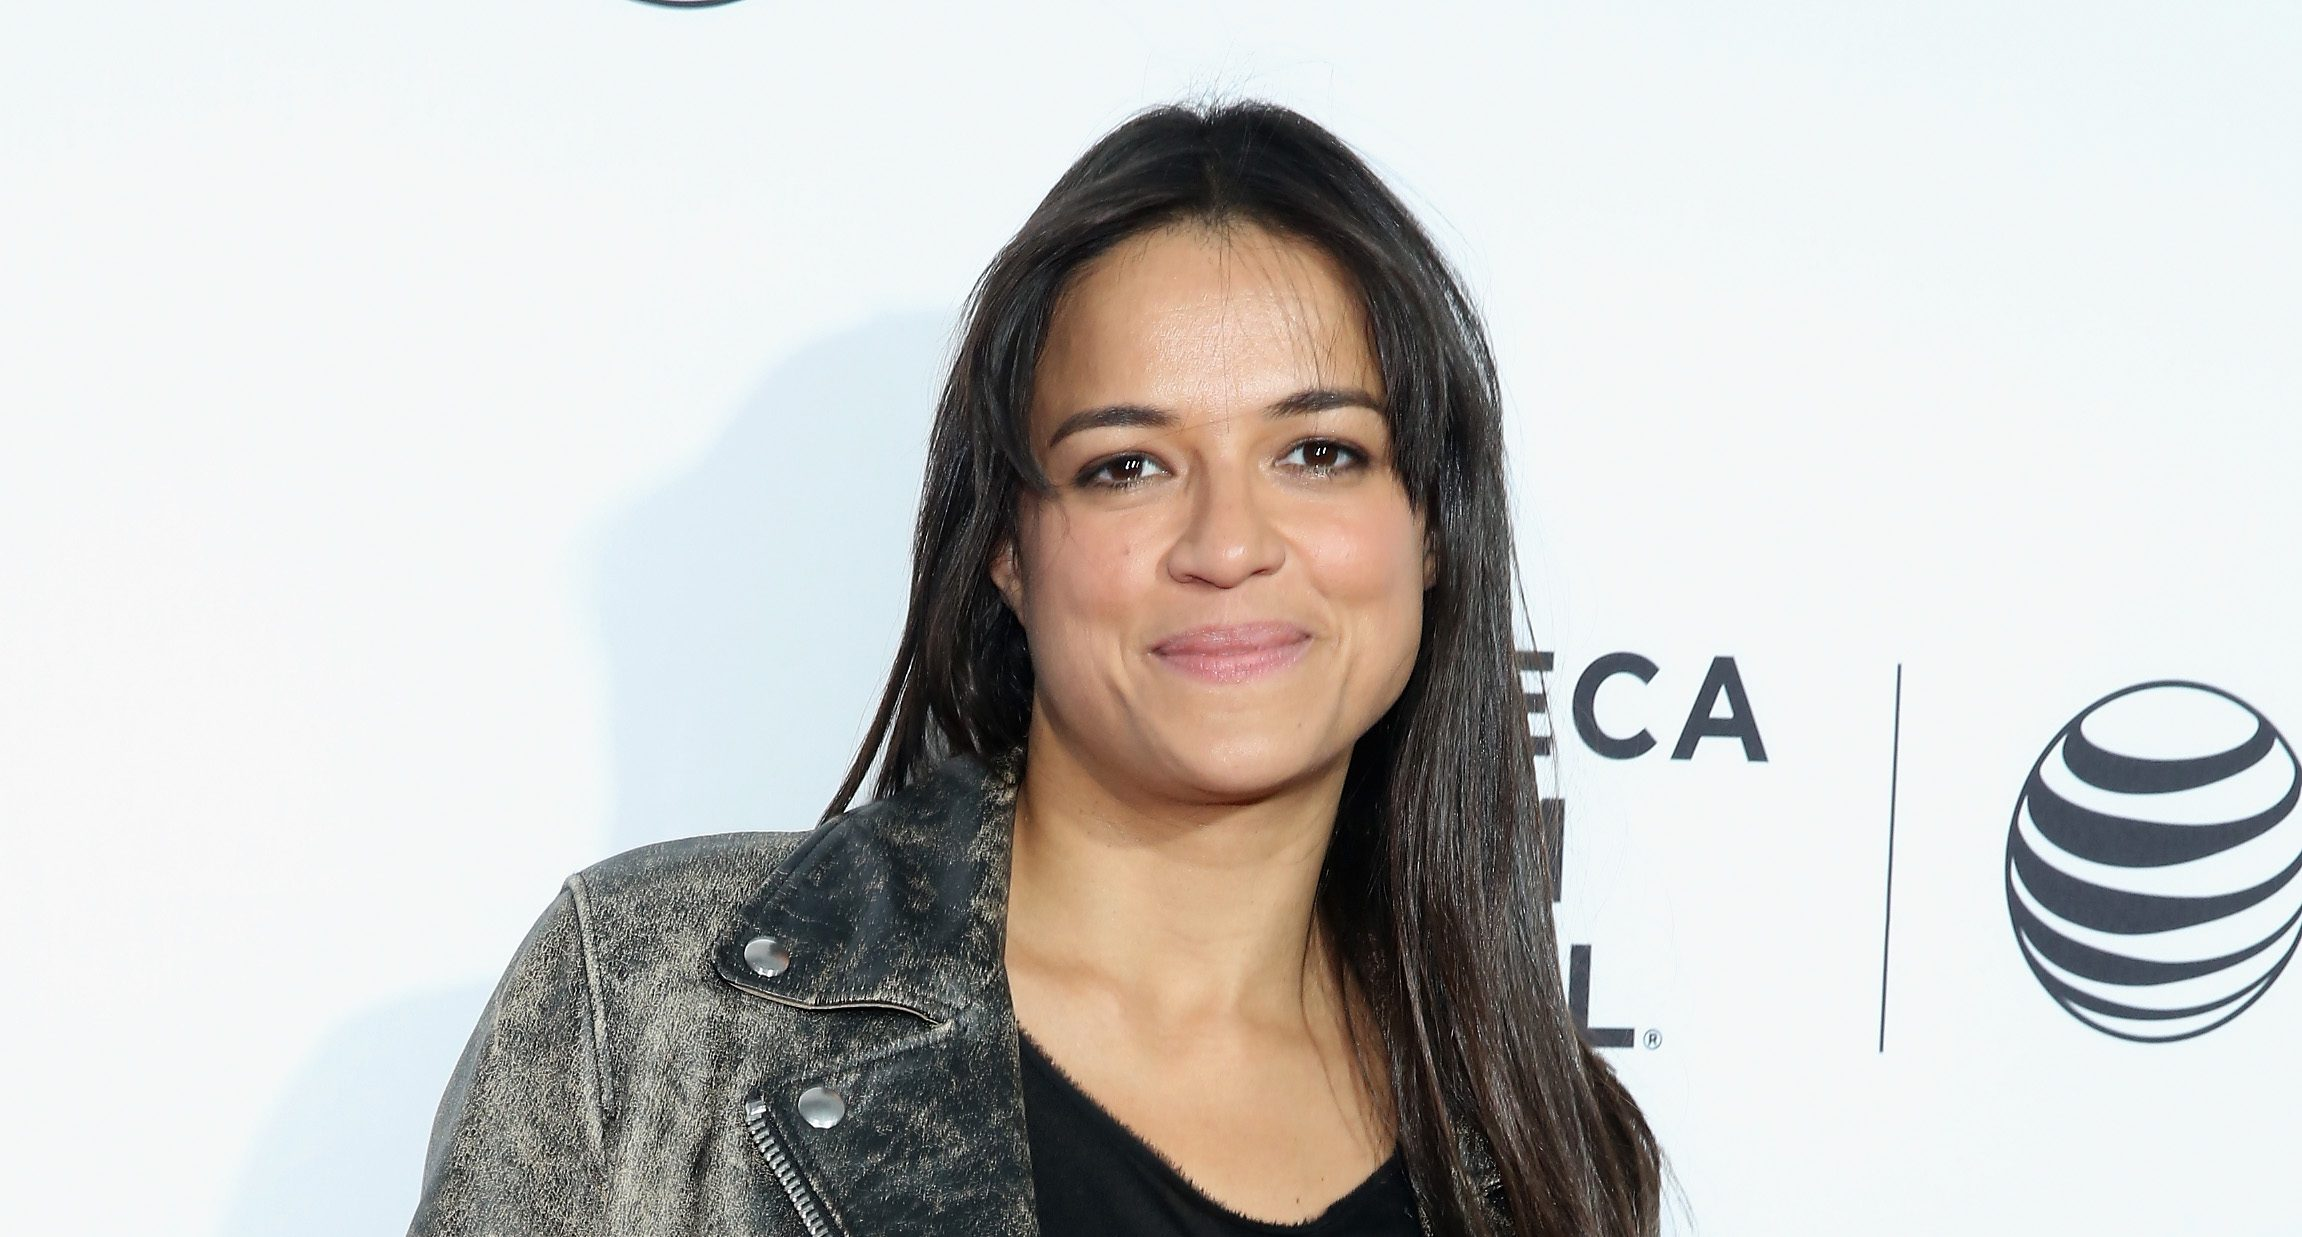 Michelle Rodriguez Agreed to Role in 'Fast & Furious 9' Only When Studio Hired Female Screenwriter